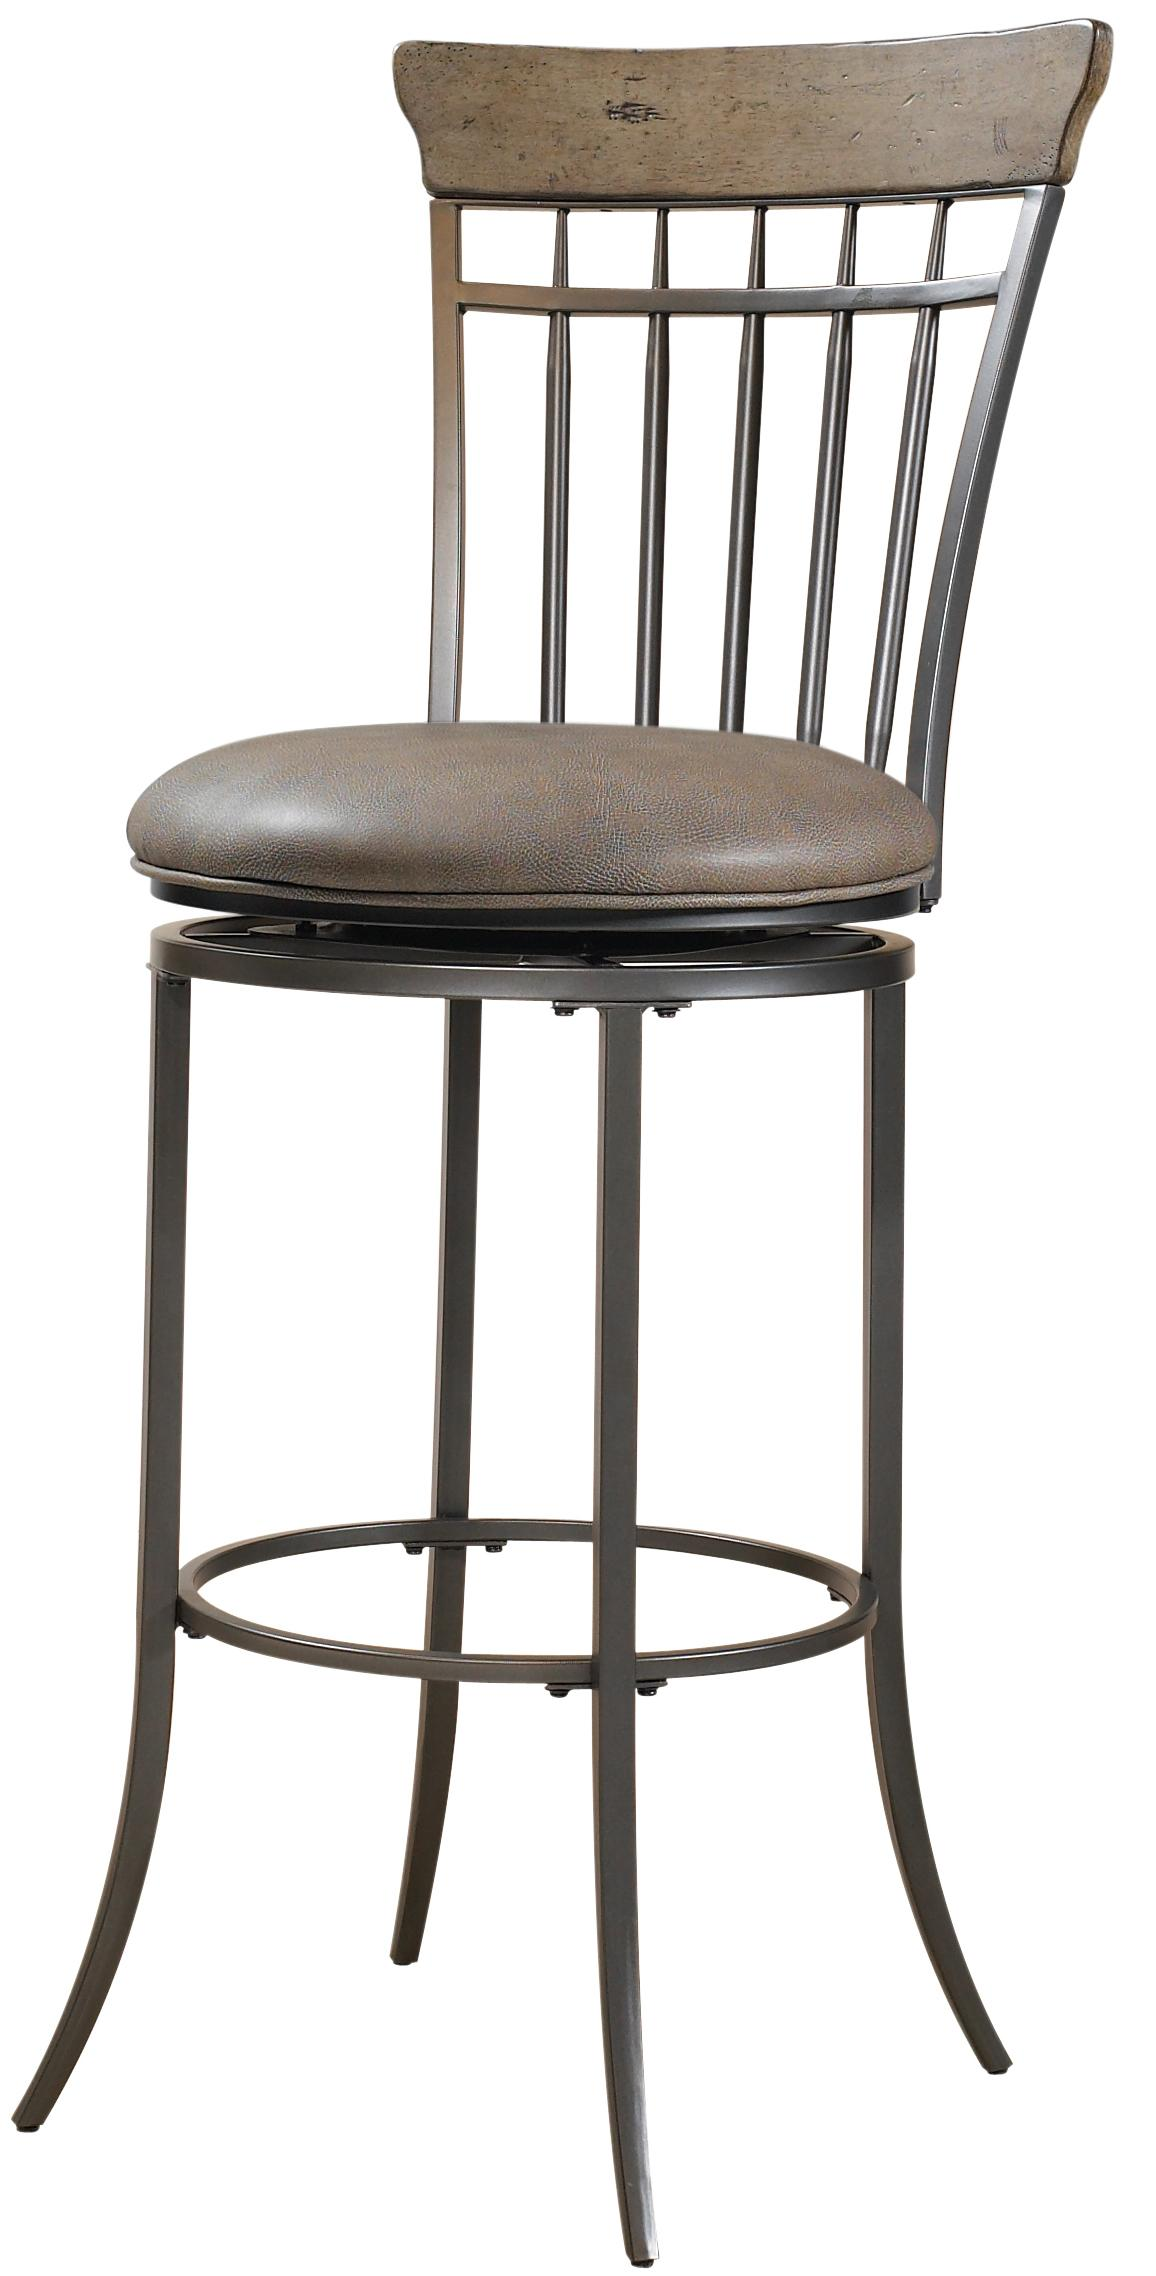 Hillsdale Metal Stools Charleston Swivel Spindle Back Counter Stool - Item Number: 4670-827